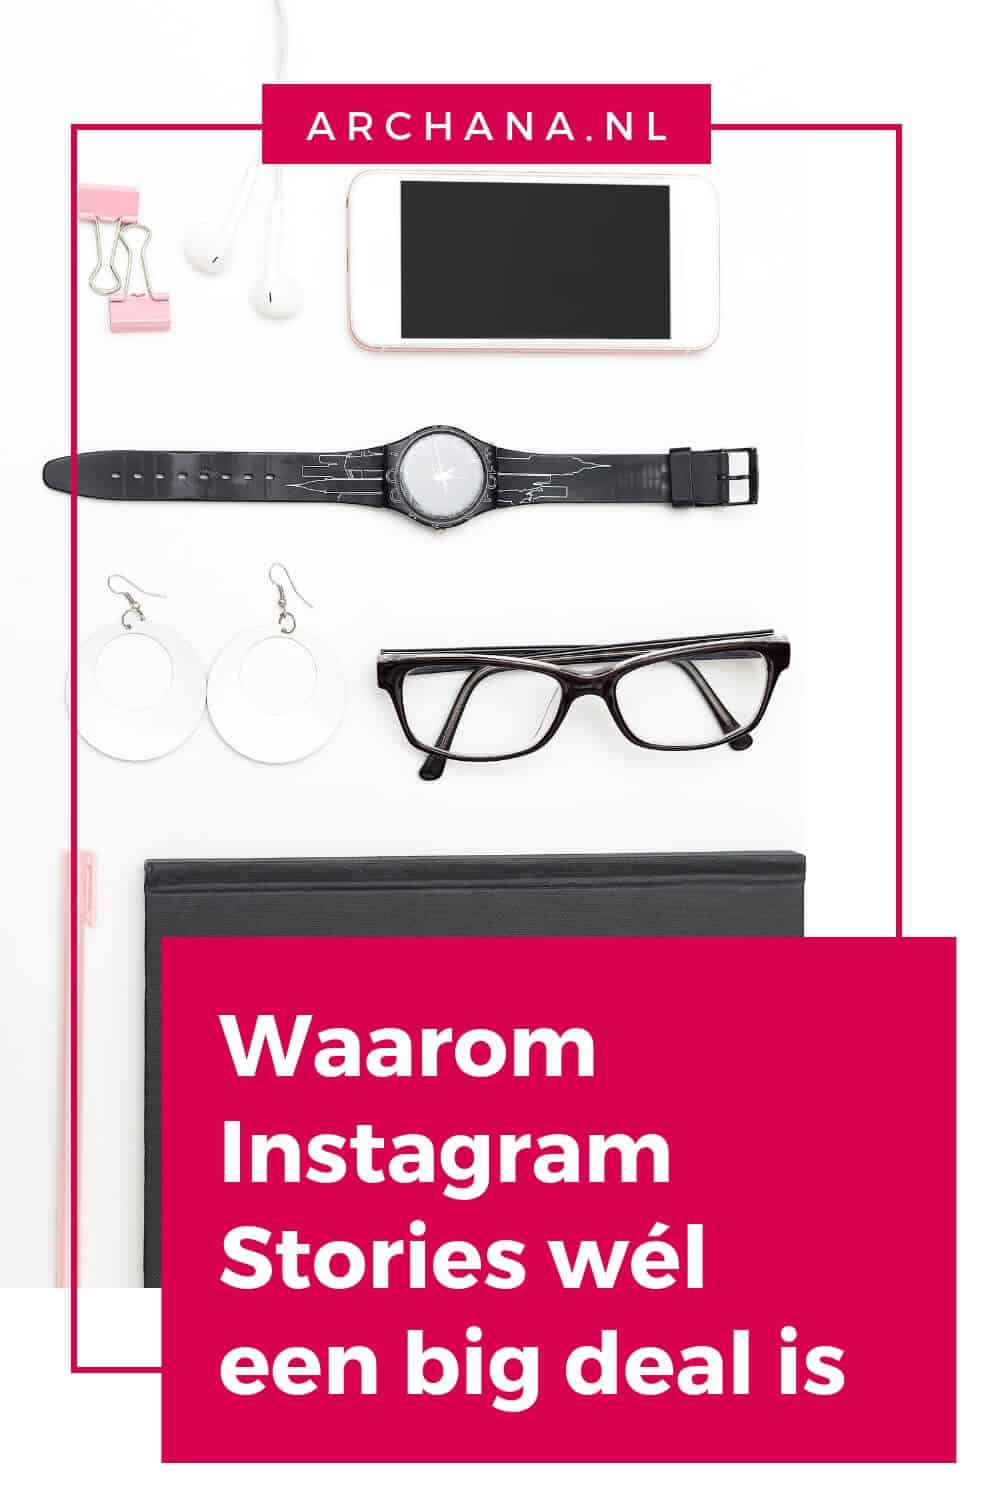 Waarom Instagram Stories wél een big deal is - ARCHANA.NL #instagramtips #instagrammarketing